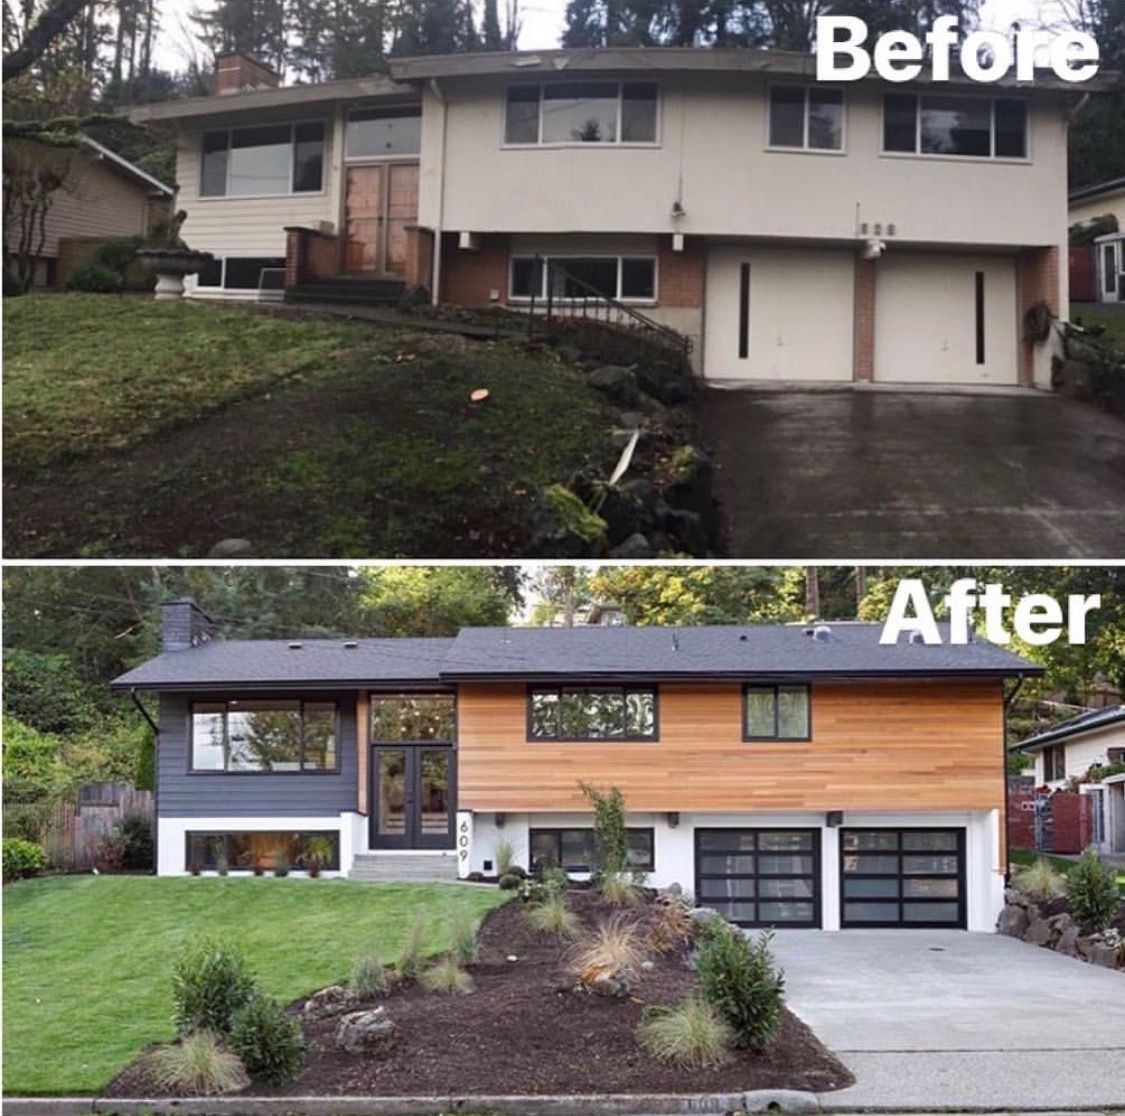 Split Level Home Exterior Makeover: Before And After, Remodel, Renovation In 2019